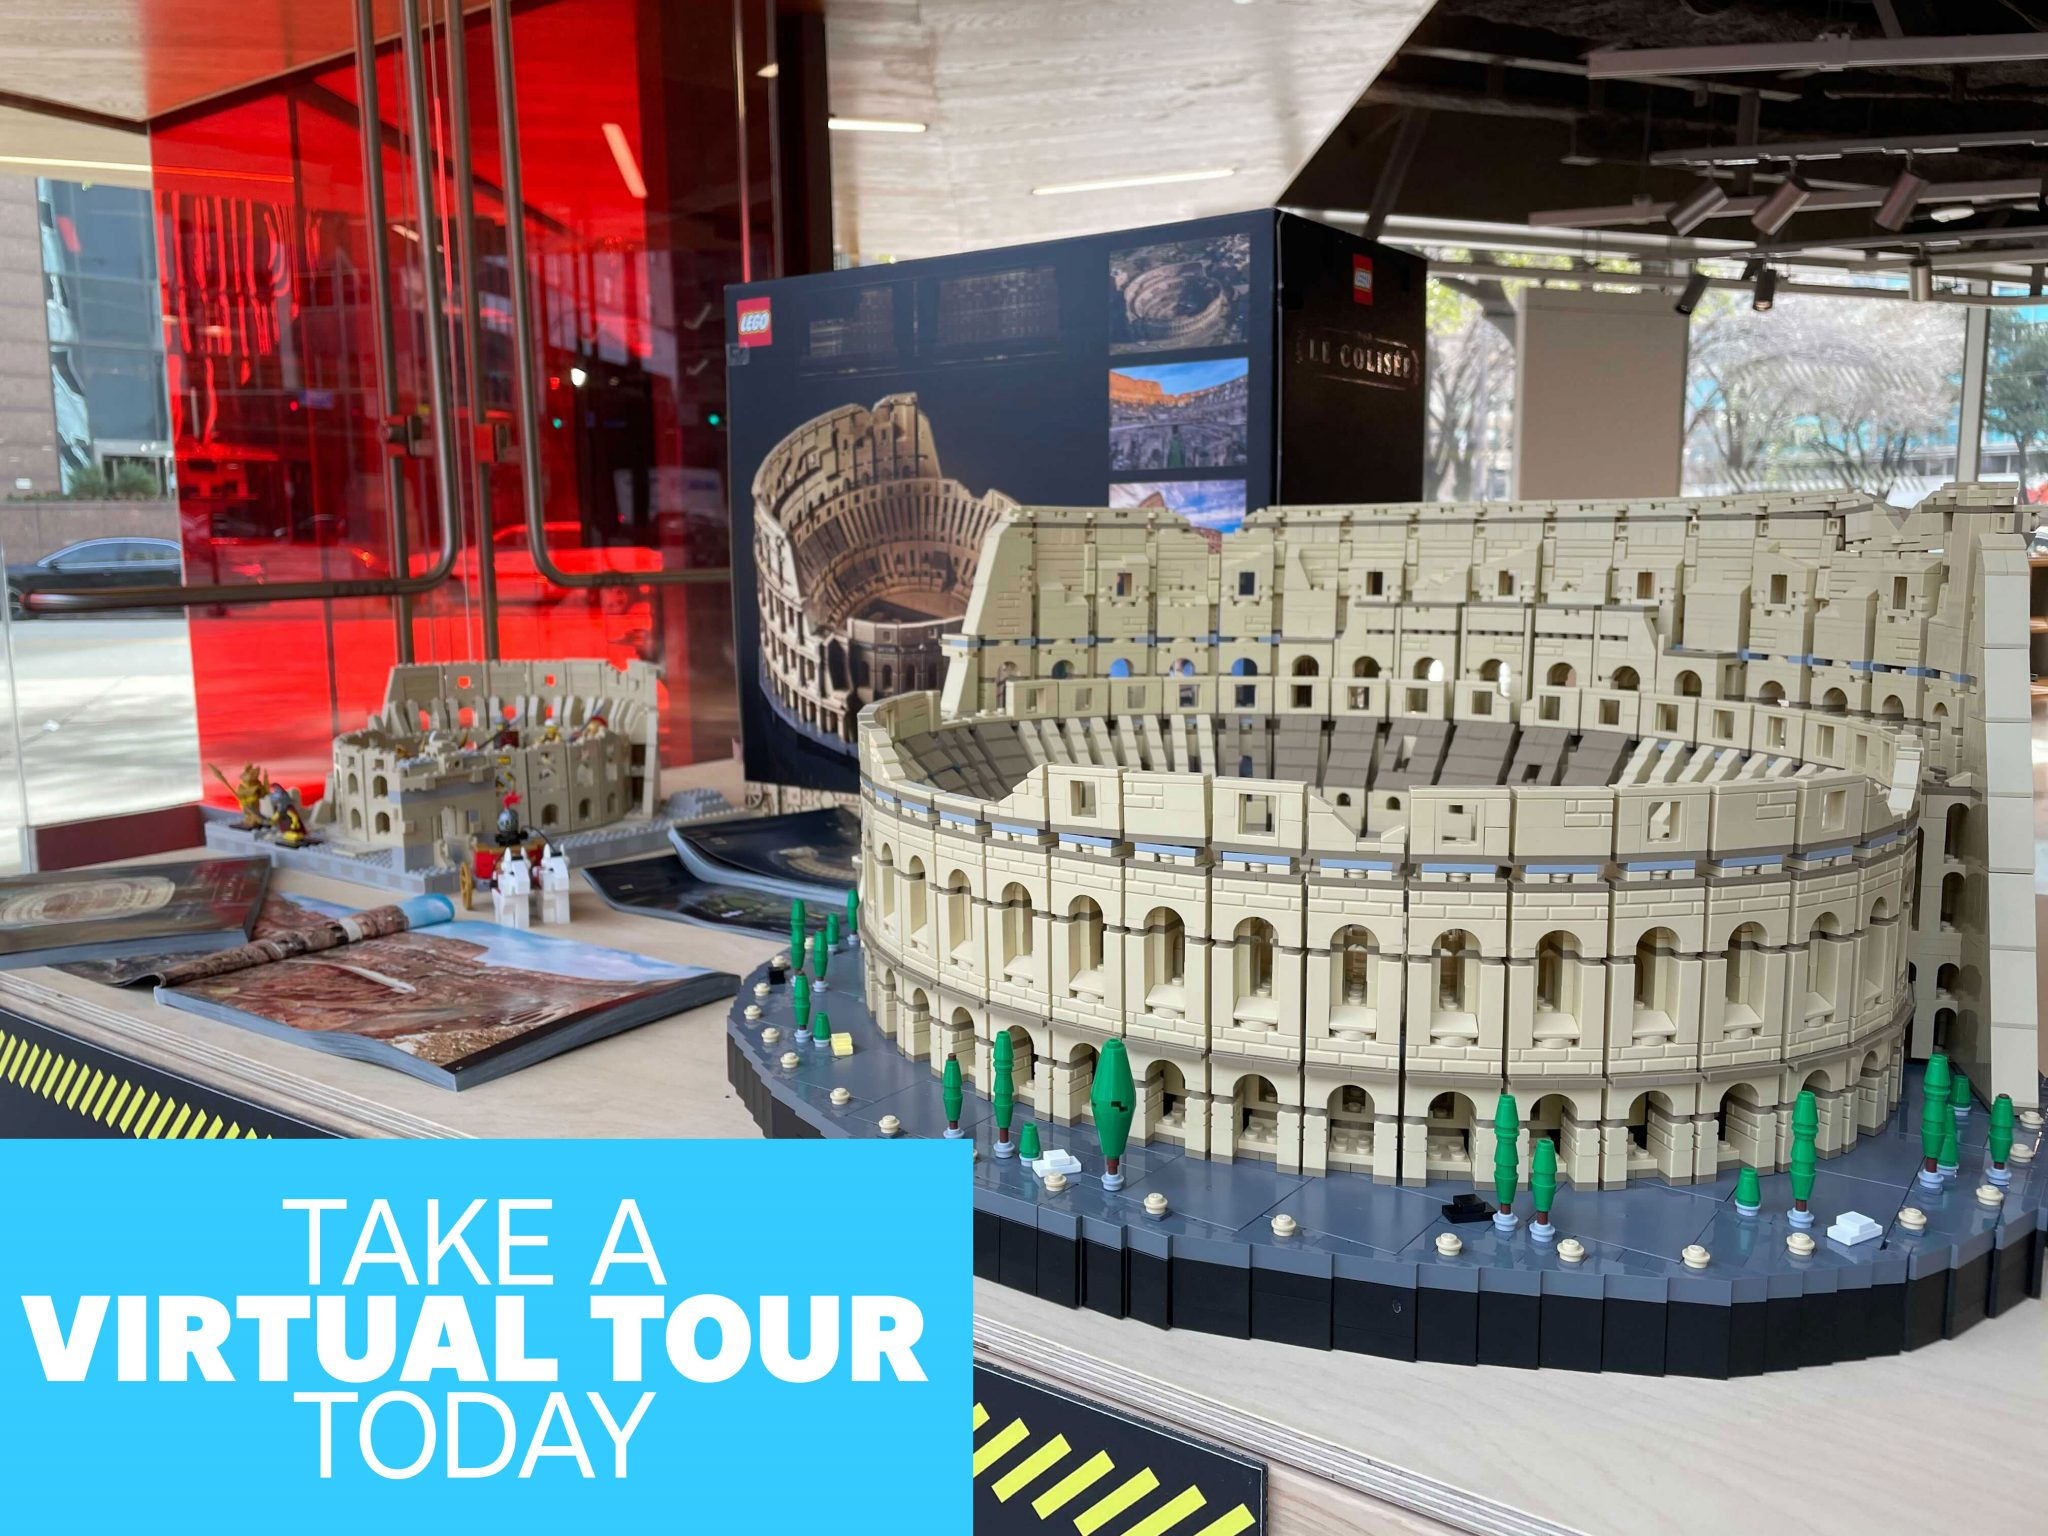 Building Toys & Toy Buildings: LEGO Architecture Edition overlay